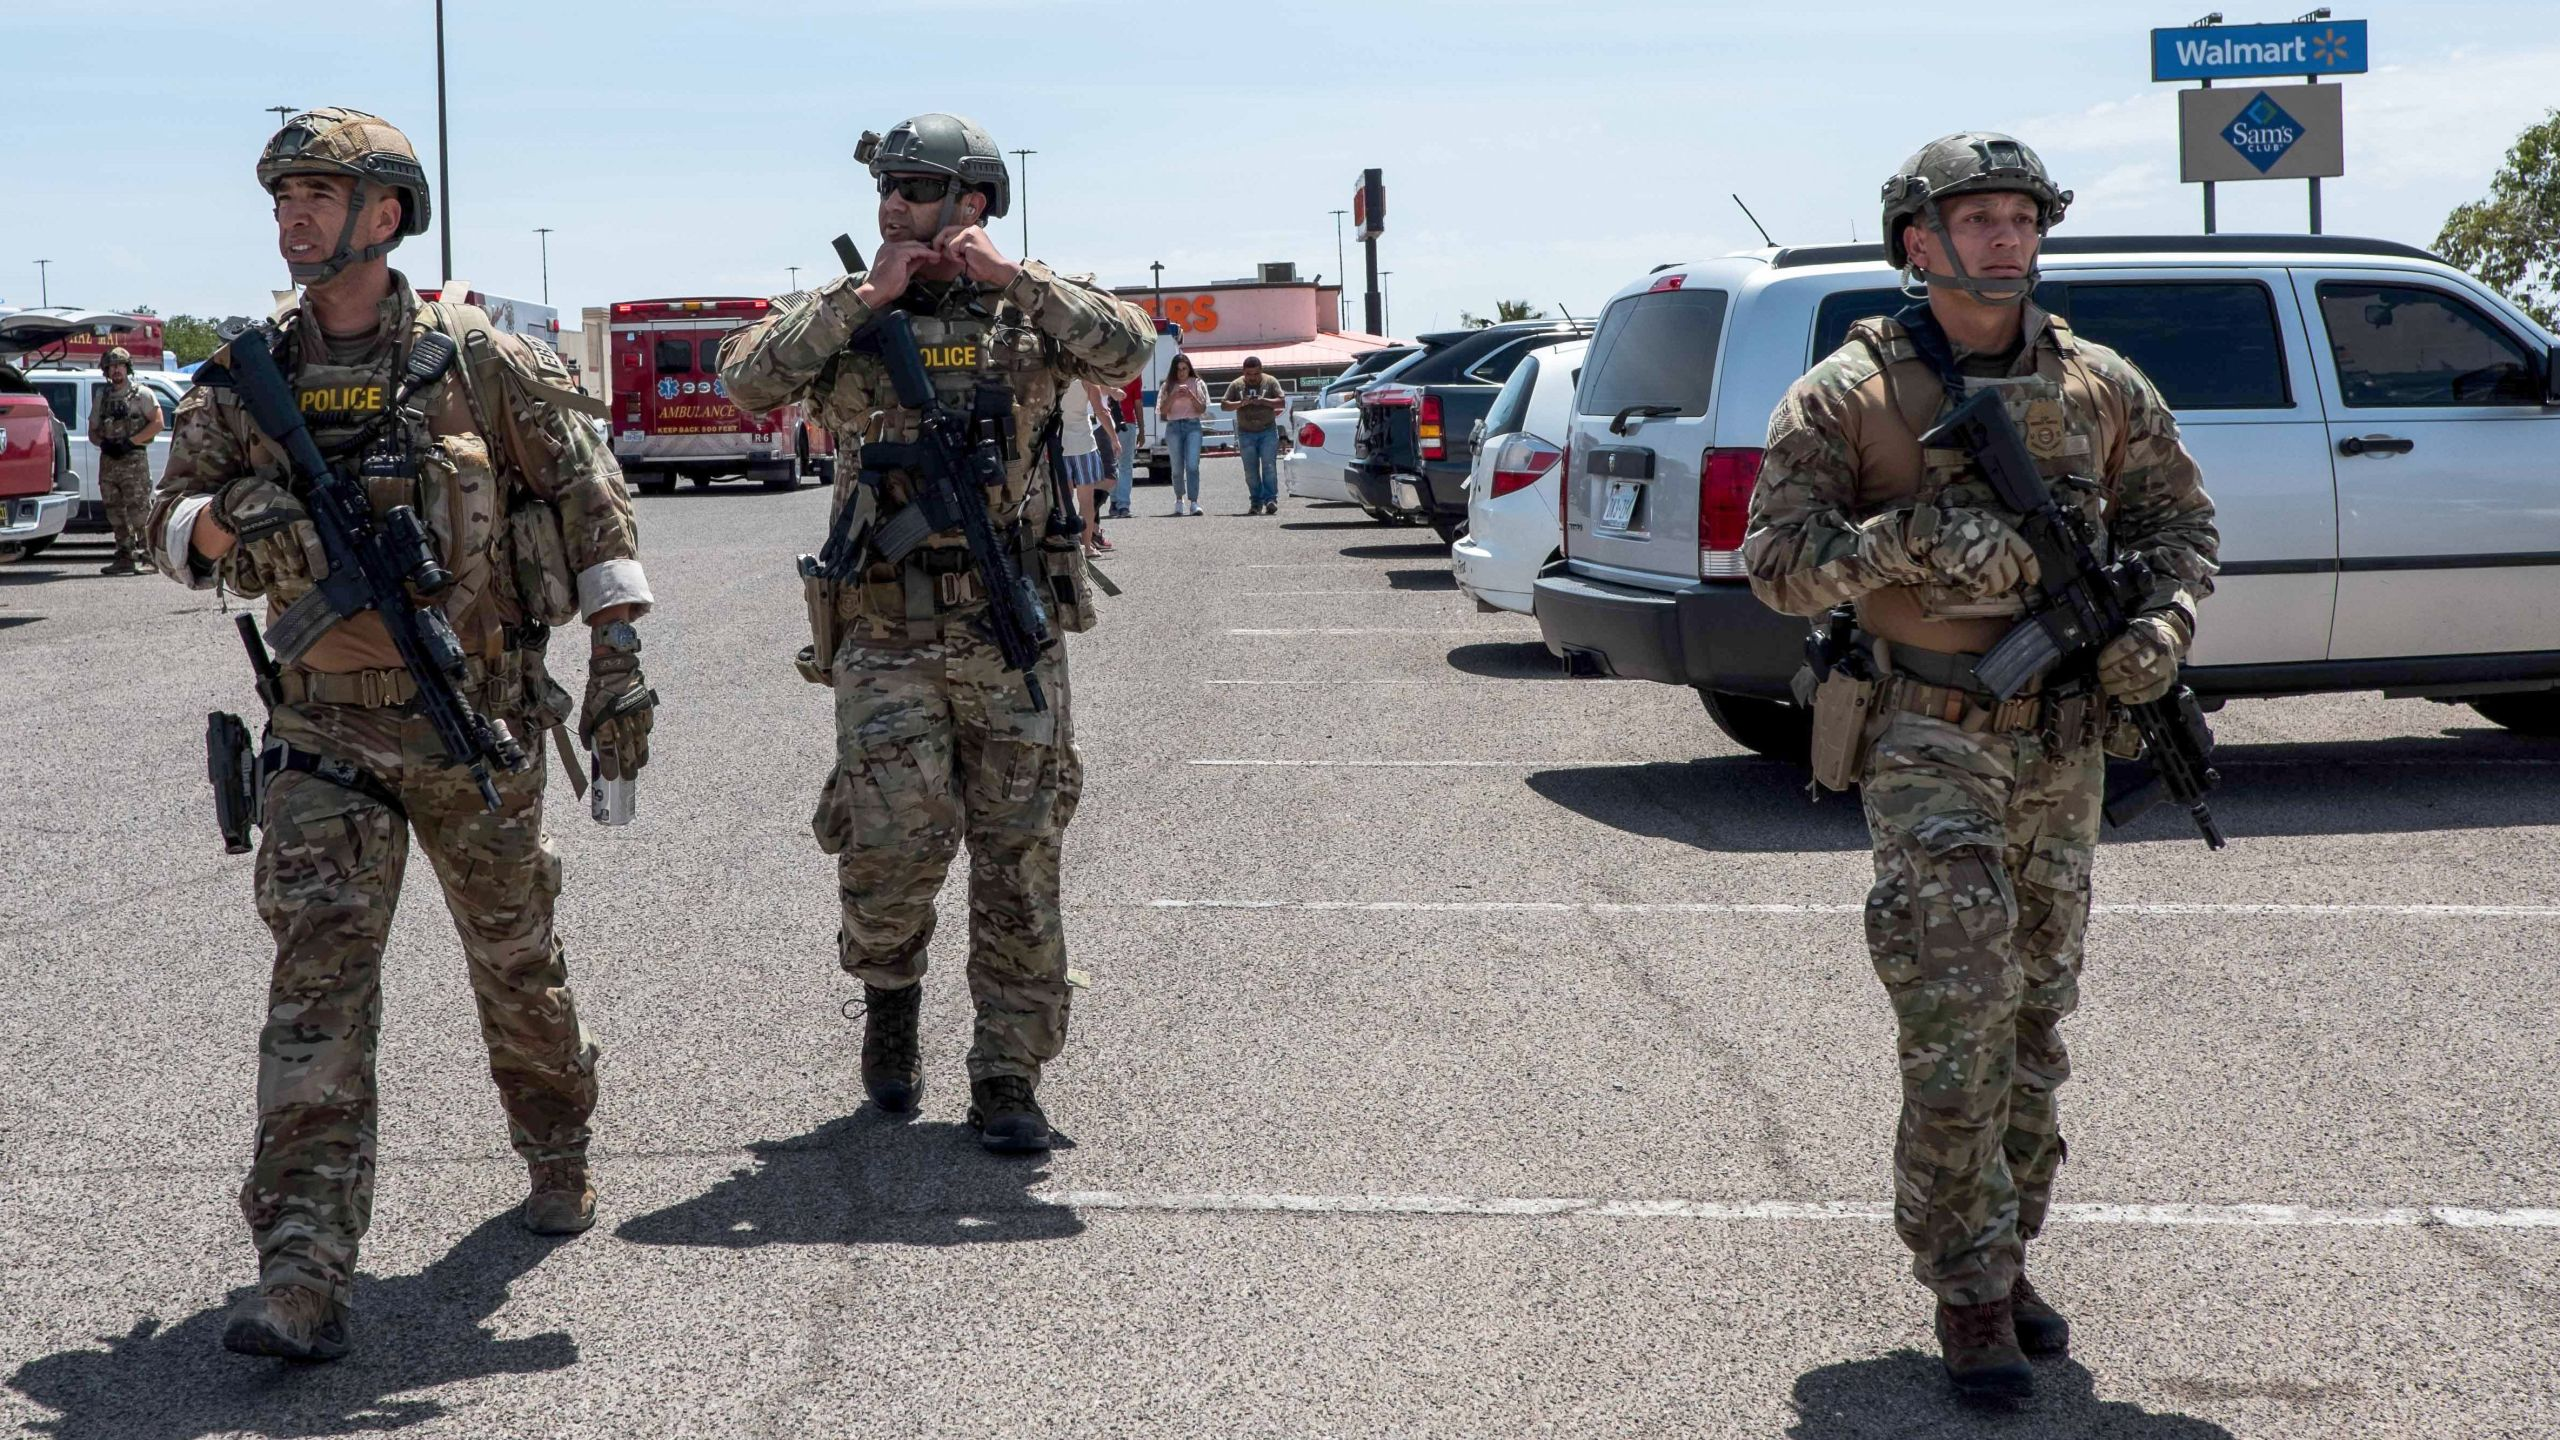 Law enforcement responds to a Walmart in El Paso, Texas, where a gunman killed 22 people on Aug. 3, 2019. (Credit: Joel Angel Juarez / AFP / Getty Images)